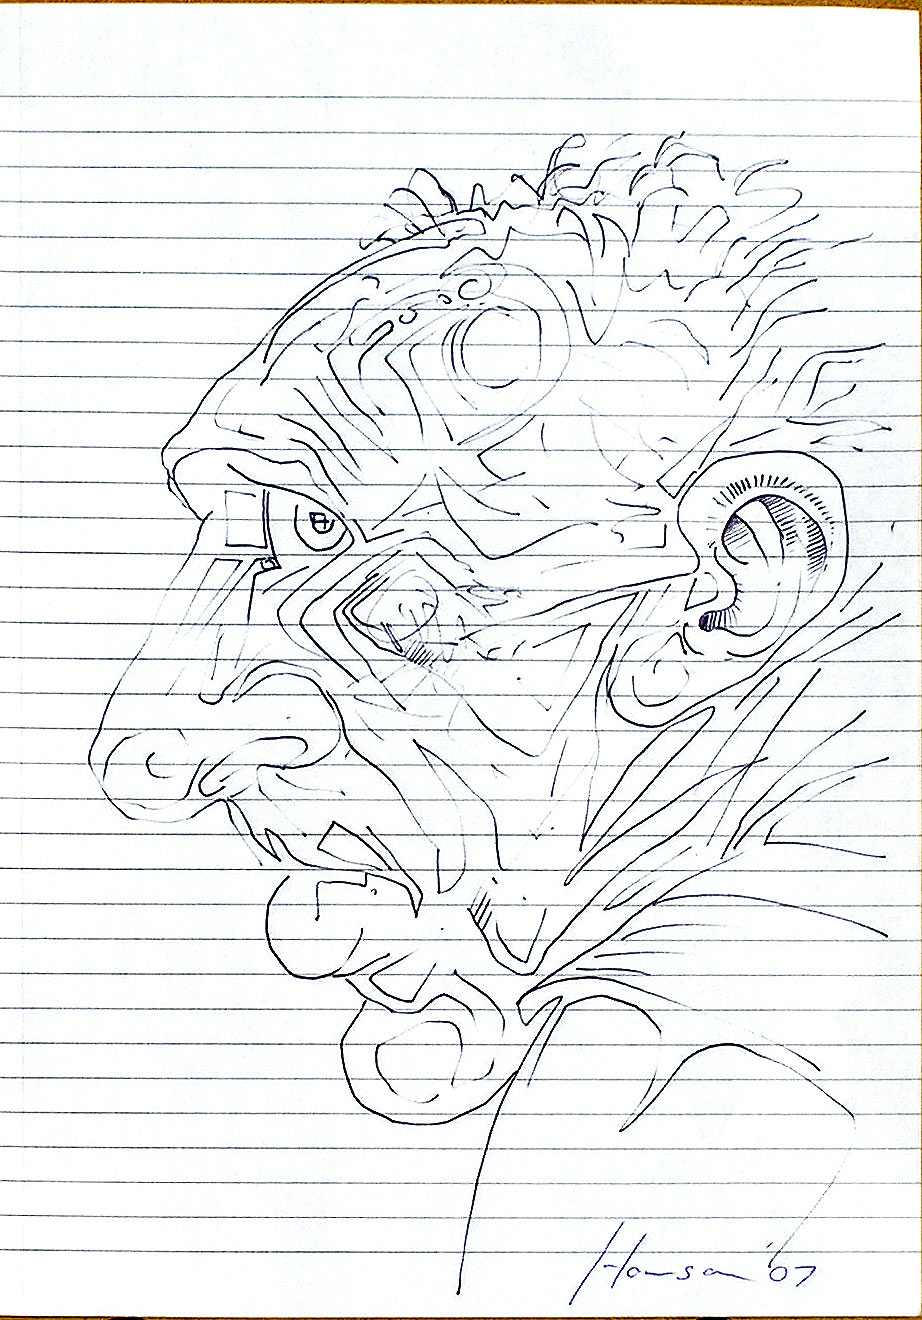 line sketch of man's head